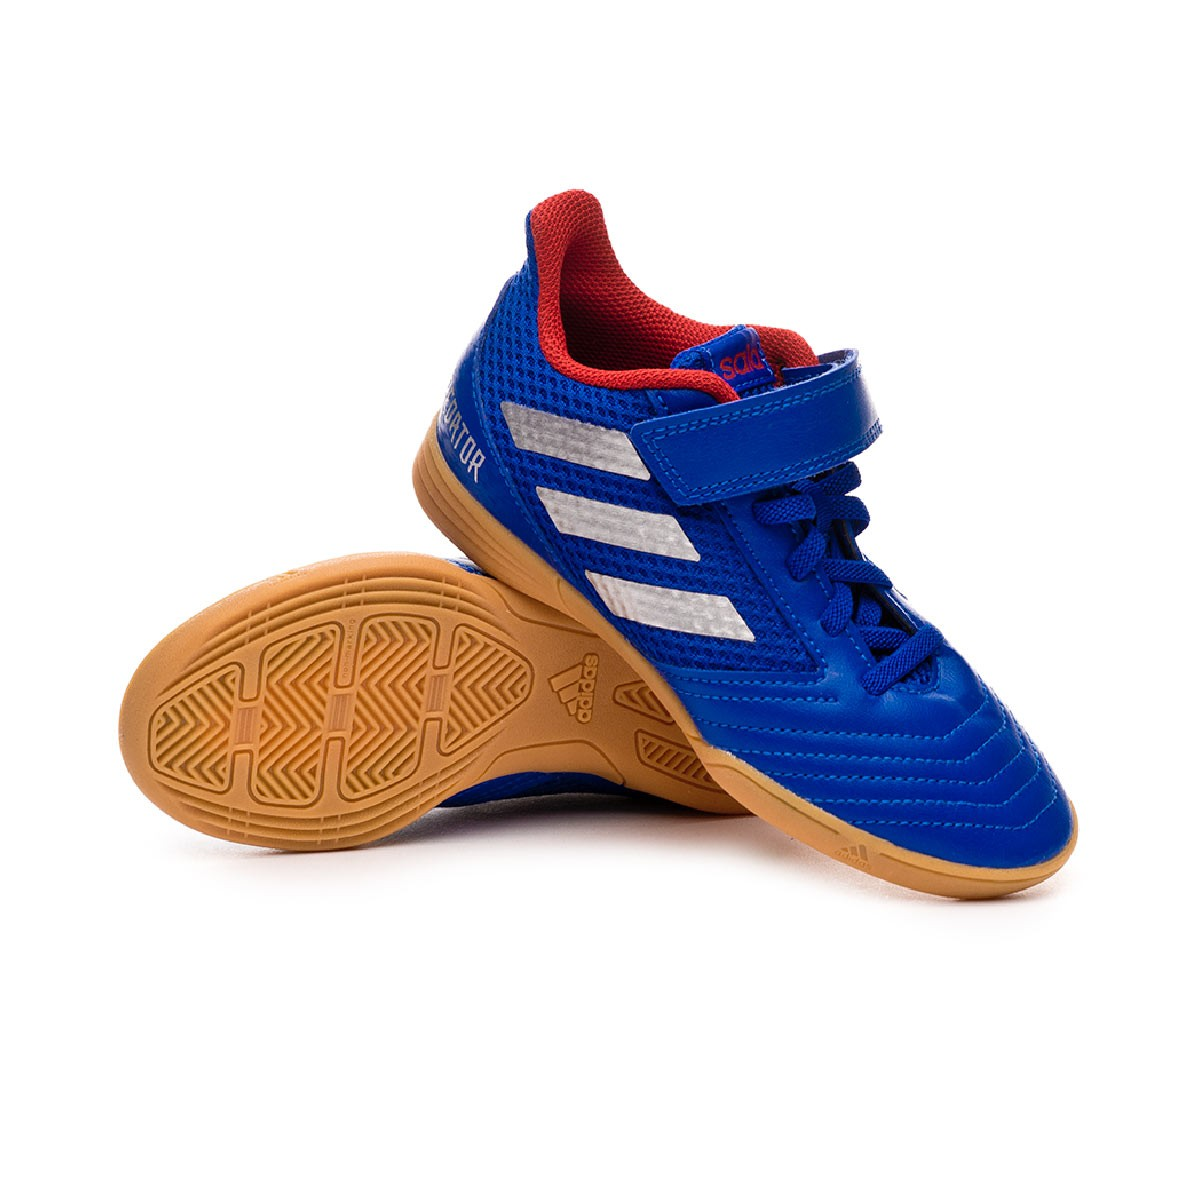 7f6e1913d Futsal Boot adidas Predator Tango 19.4 IN Sala Niño Bold blue-Silver  metallic-Active red - Football store Fútbol Emotion